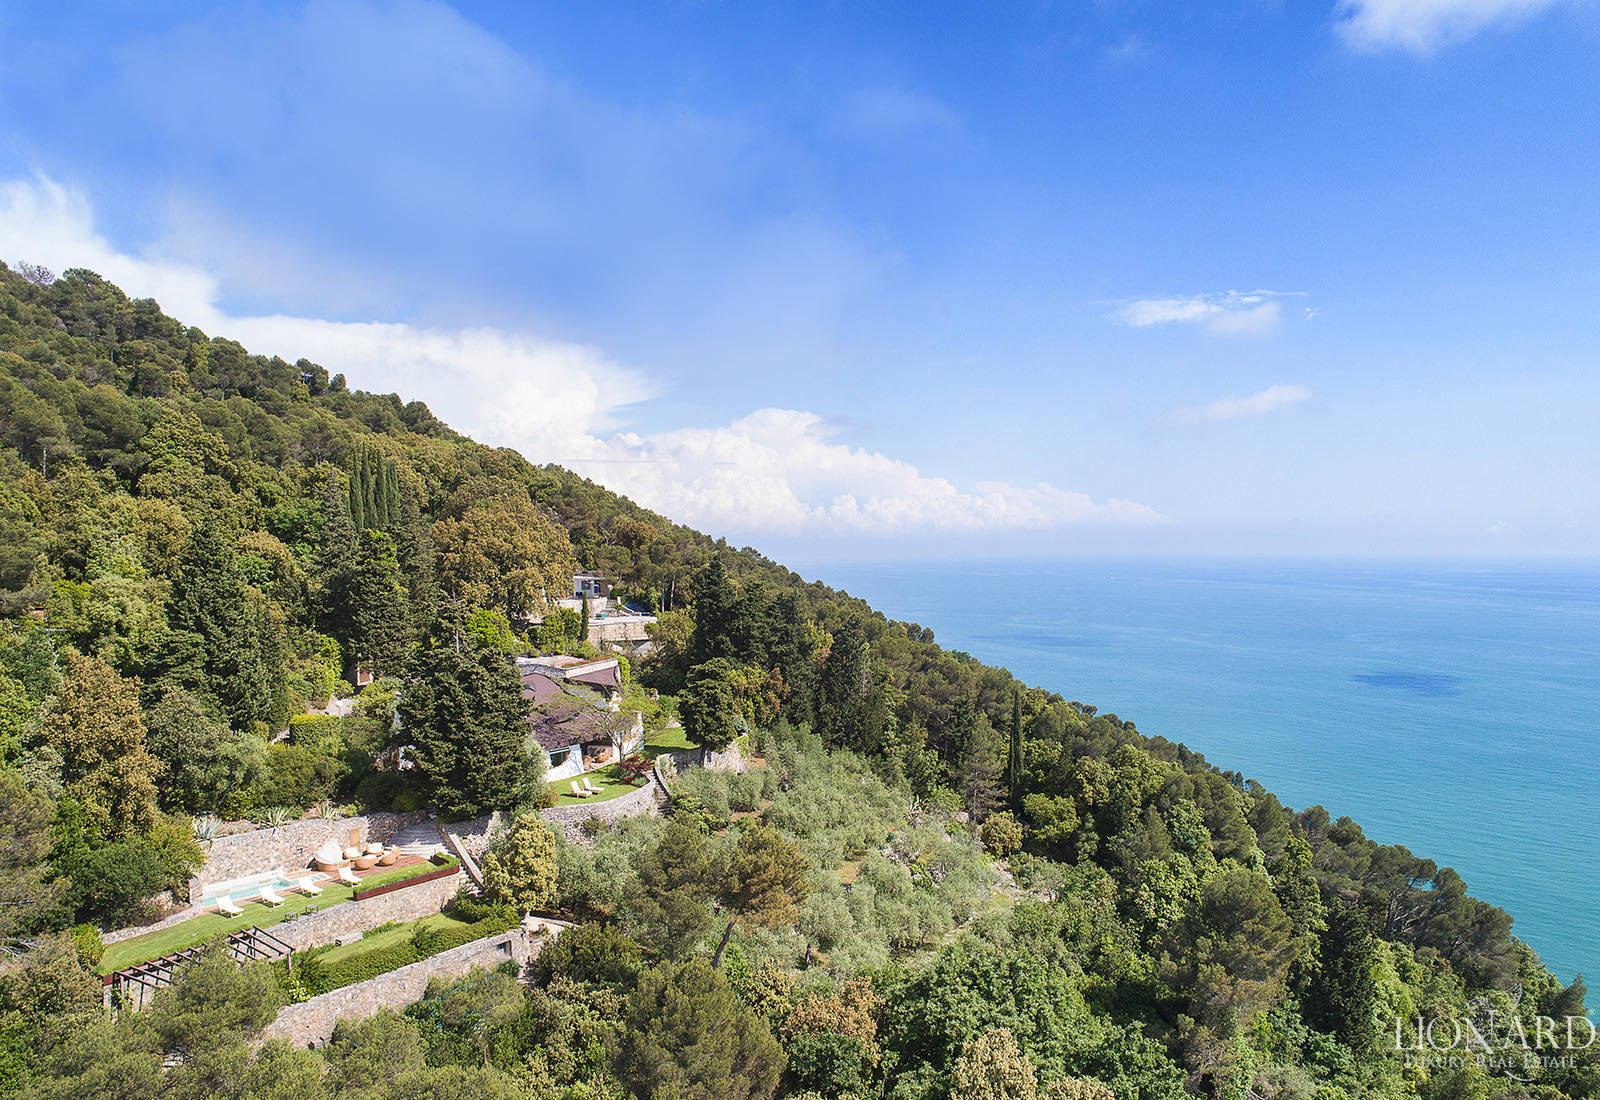 Villa for sale by Lerici's sea